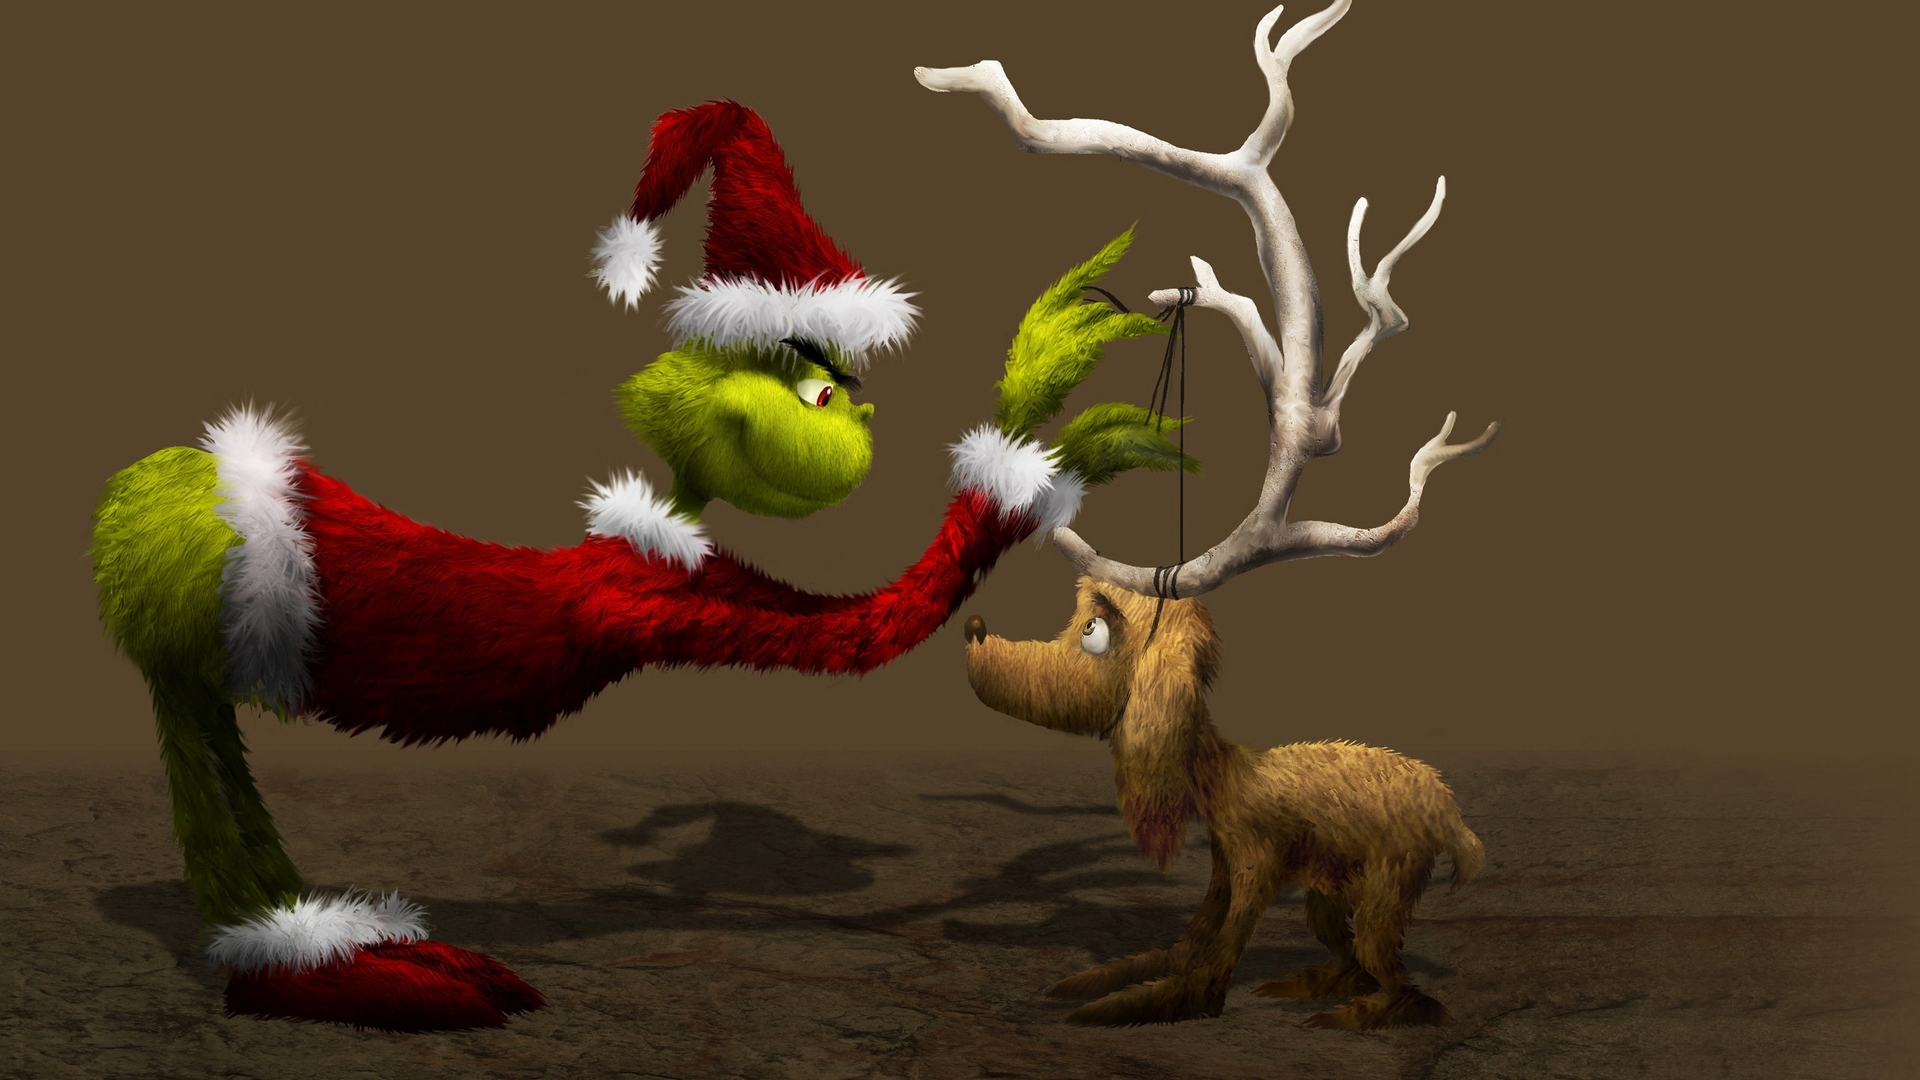 Download The Grinch wallpaper 1920x1080